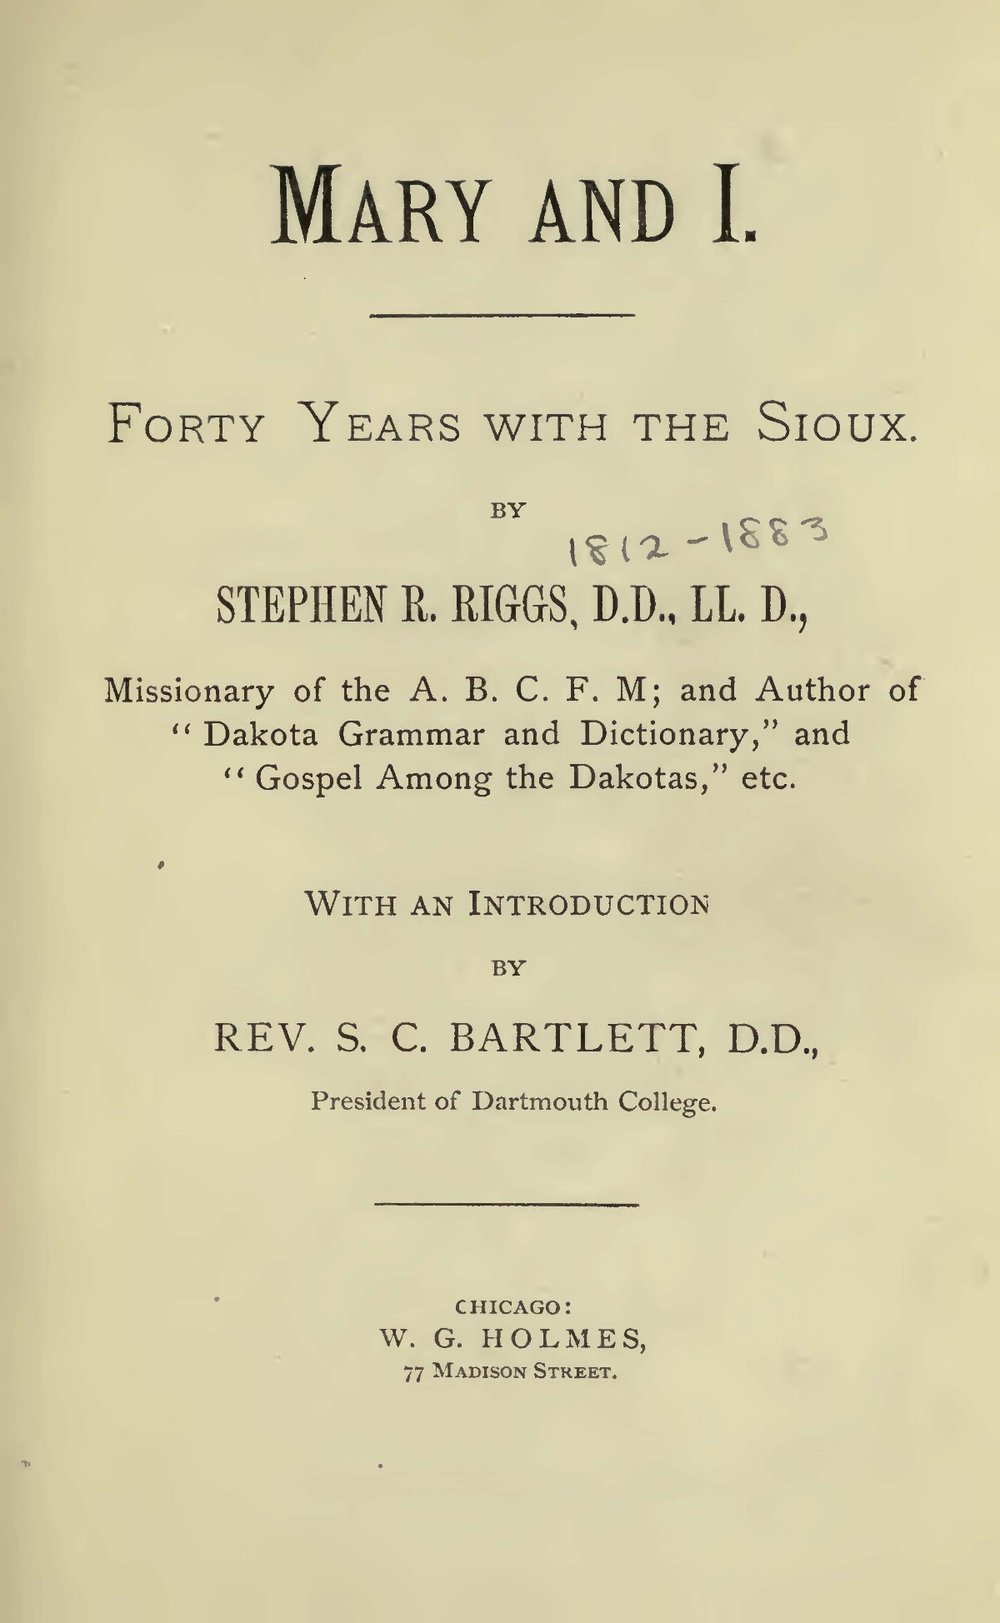 Riggs, Stephen Return, Mary and I Forty Years With the Sioux Title Page.jpg